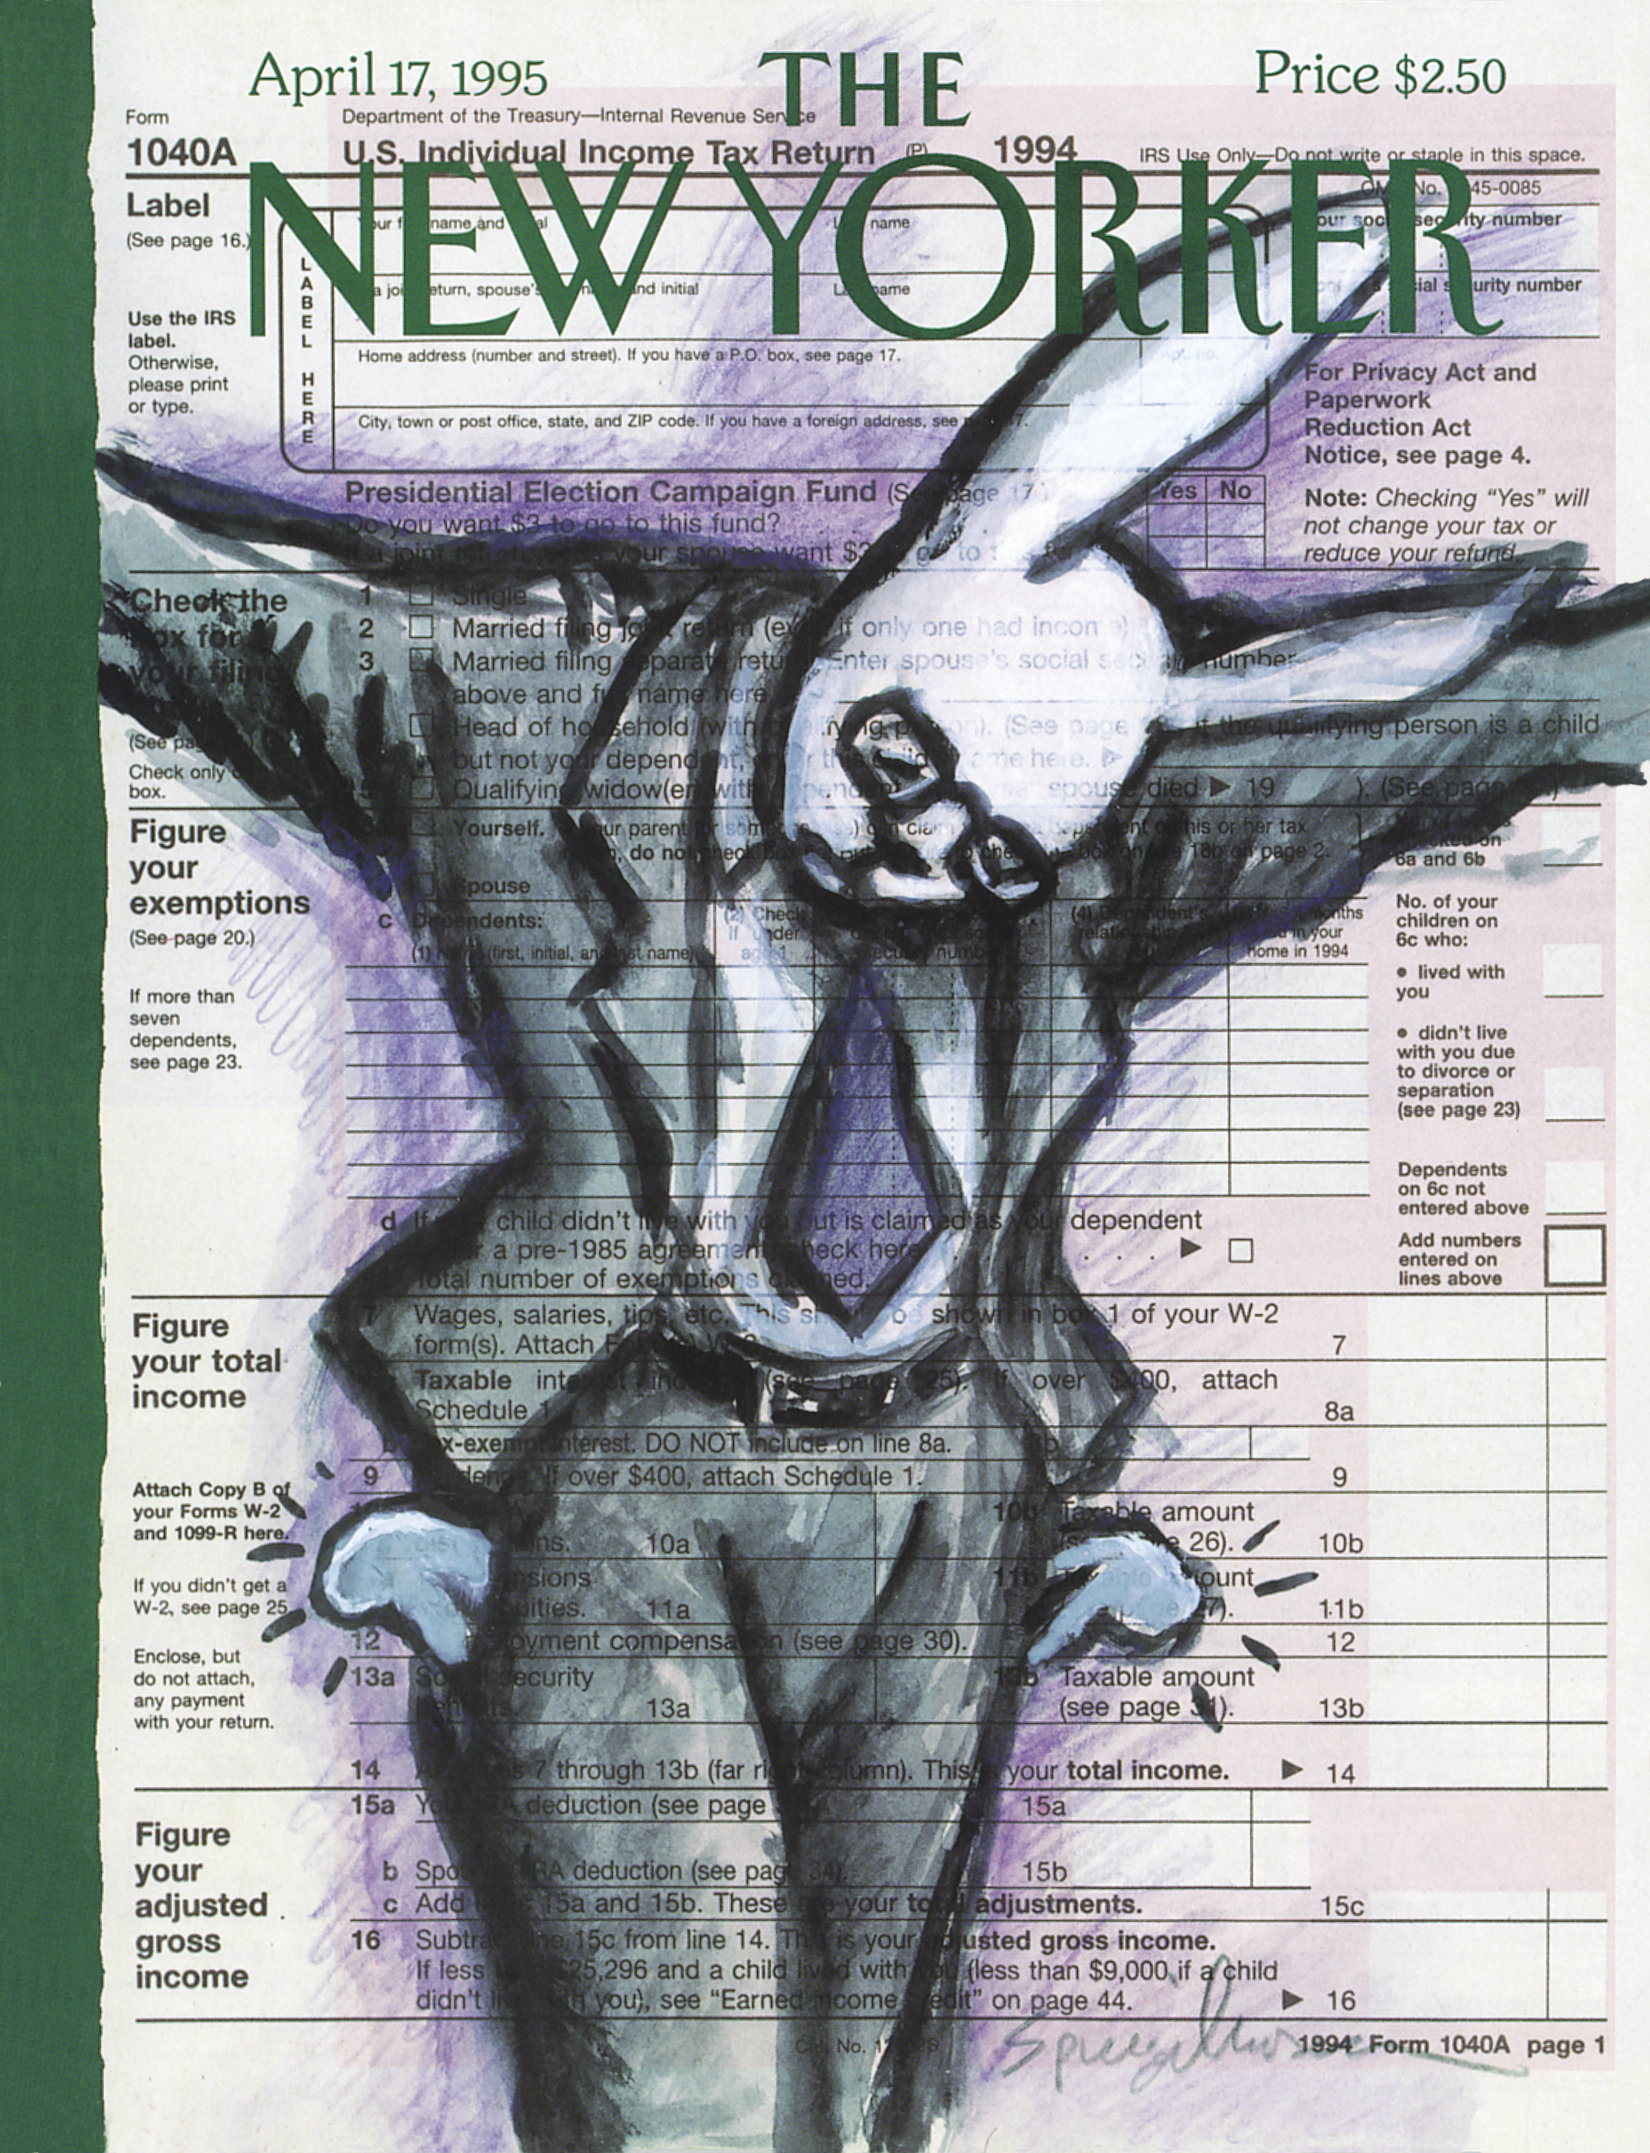 The April 17, 1995 issue of the <i>New Yorker</i>, commenting on Easter coinciding with tax season.